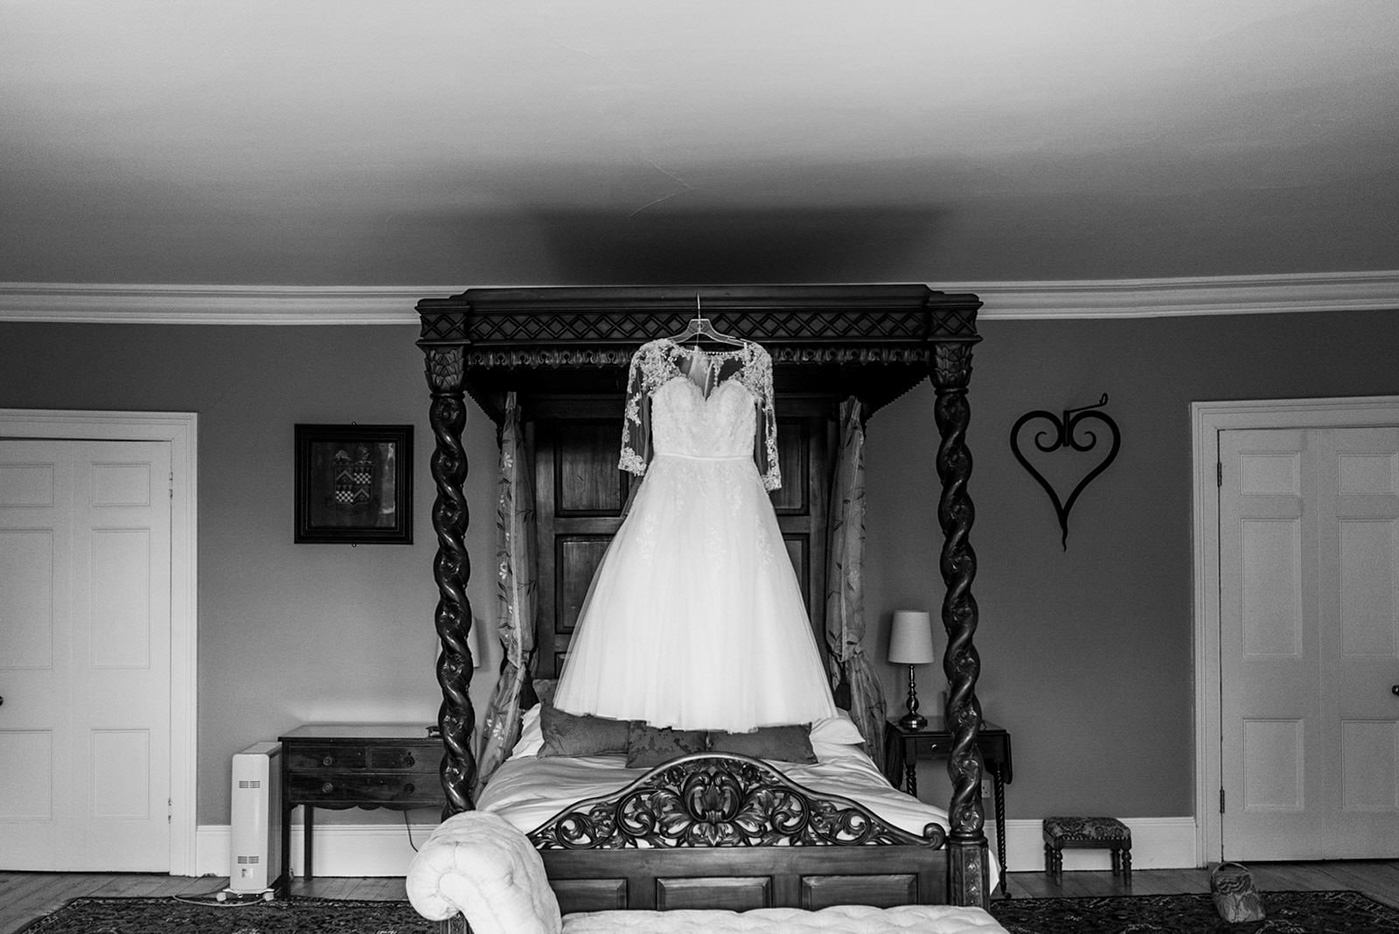 wedding dress hanging in black and white